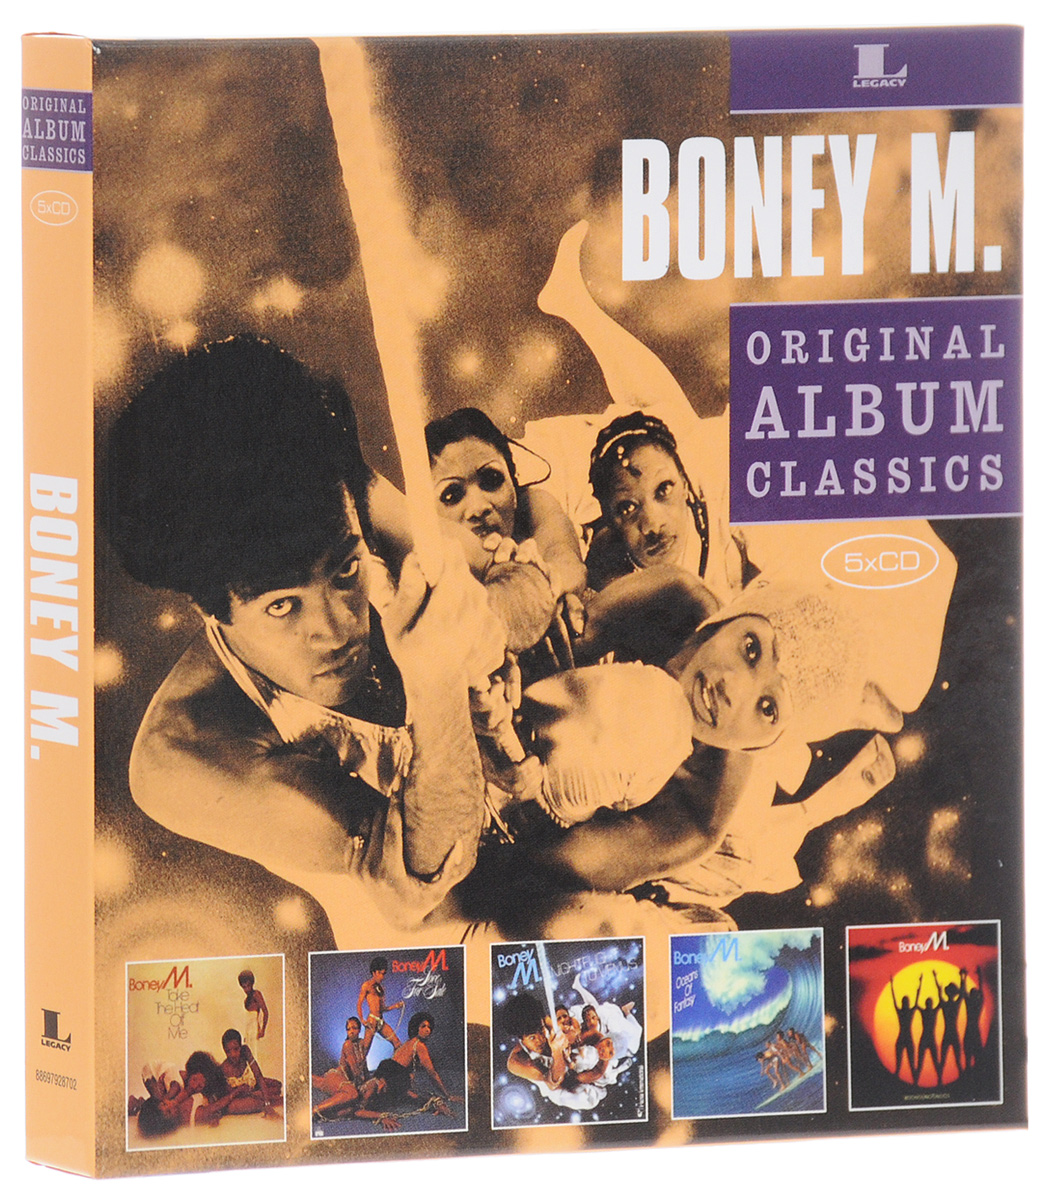 Boney M Boney M. Original Album Classics (5 CD) виниловая пластинка boney m christmas album